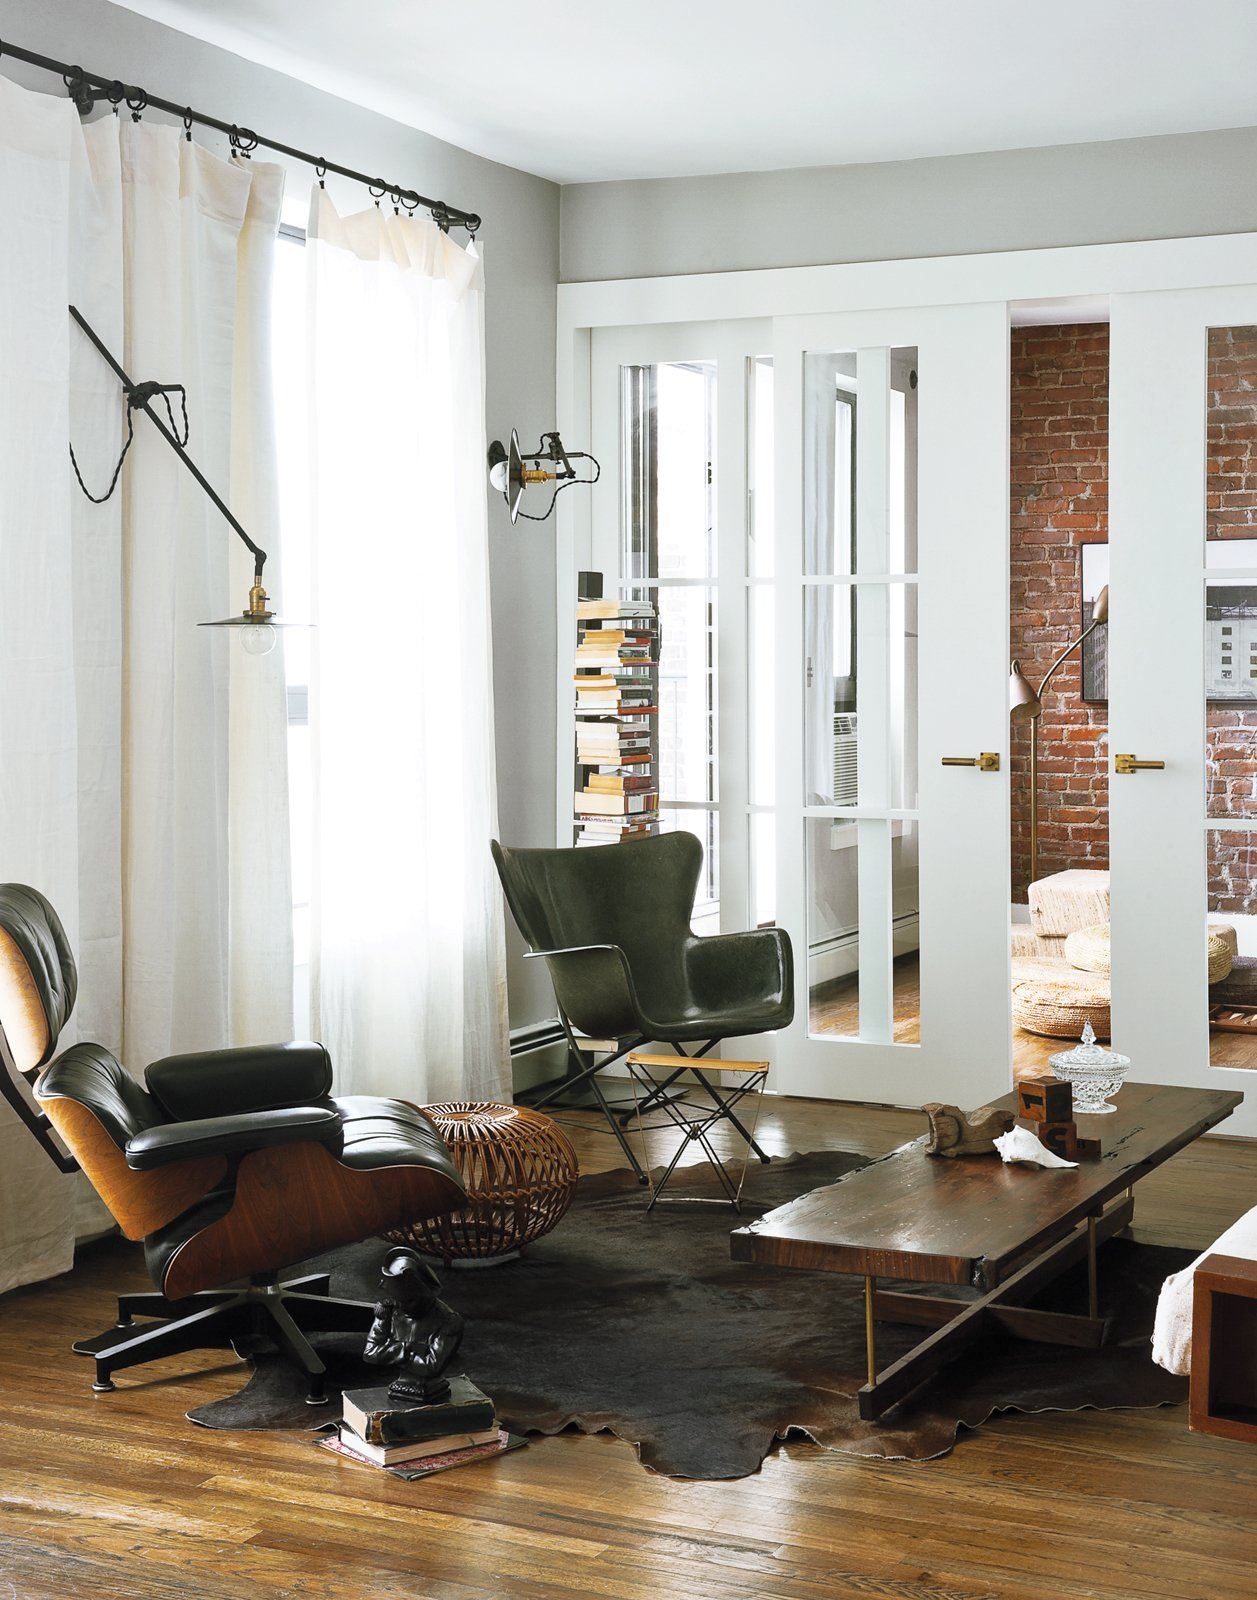 In the living room, an Eames lounge chair   is matched with a Richard Conover–designed fiberglass chair in similar proportions. A custom coffee table by Asher Israelow com-plements the industrial lighting by Workstead, affixed to walls painted in Farrow and Ball's Manor House Gray. The sliding doors leading into the home office were fabricated by Markus Bartenschlager. Tagged: Living Room, Recliner, Coffee Tables, Chair, Bookcase, Wall Lighting, Rug Floor, and Dark Hardwood Floor.  Photo 8 of 19 in How to Take a Dwell Photo